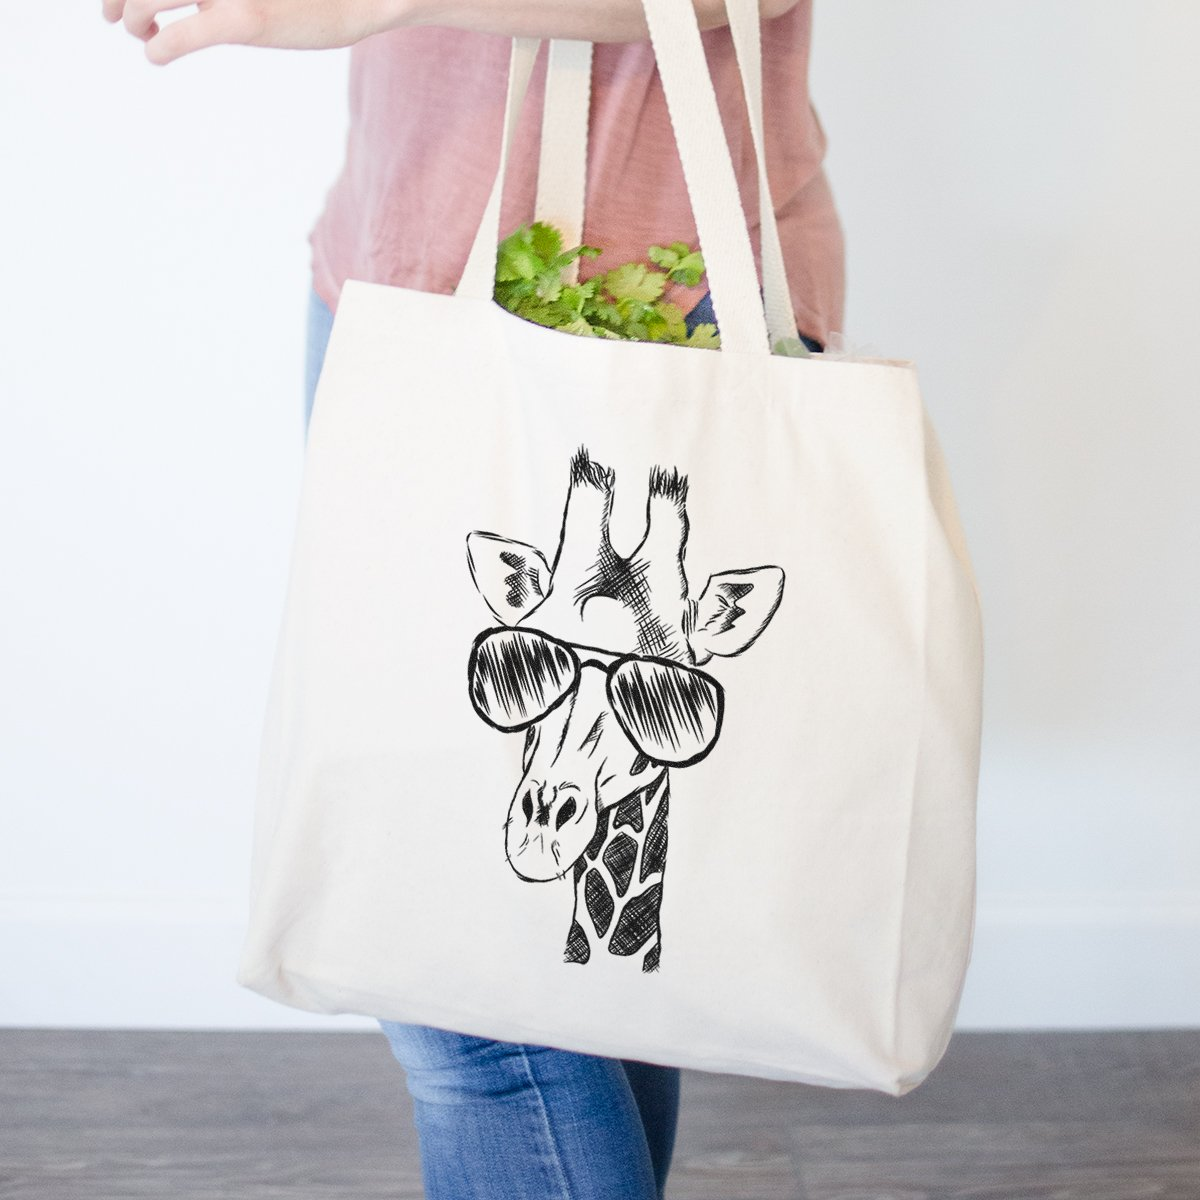 気質アップ (Printed Both Sides) - Geoffrey 1 the x Giraffe Heavy Duty Printed 100% Cotton Canvas Tote Shopping Reusable Grocery Bag 14.75 x 14.75 x 5 B0793FJB2Z Printed 1 Side Printed 1 Side, ノカミチョウ:47275733 --- vezam.lt